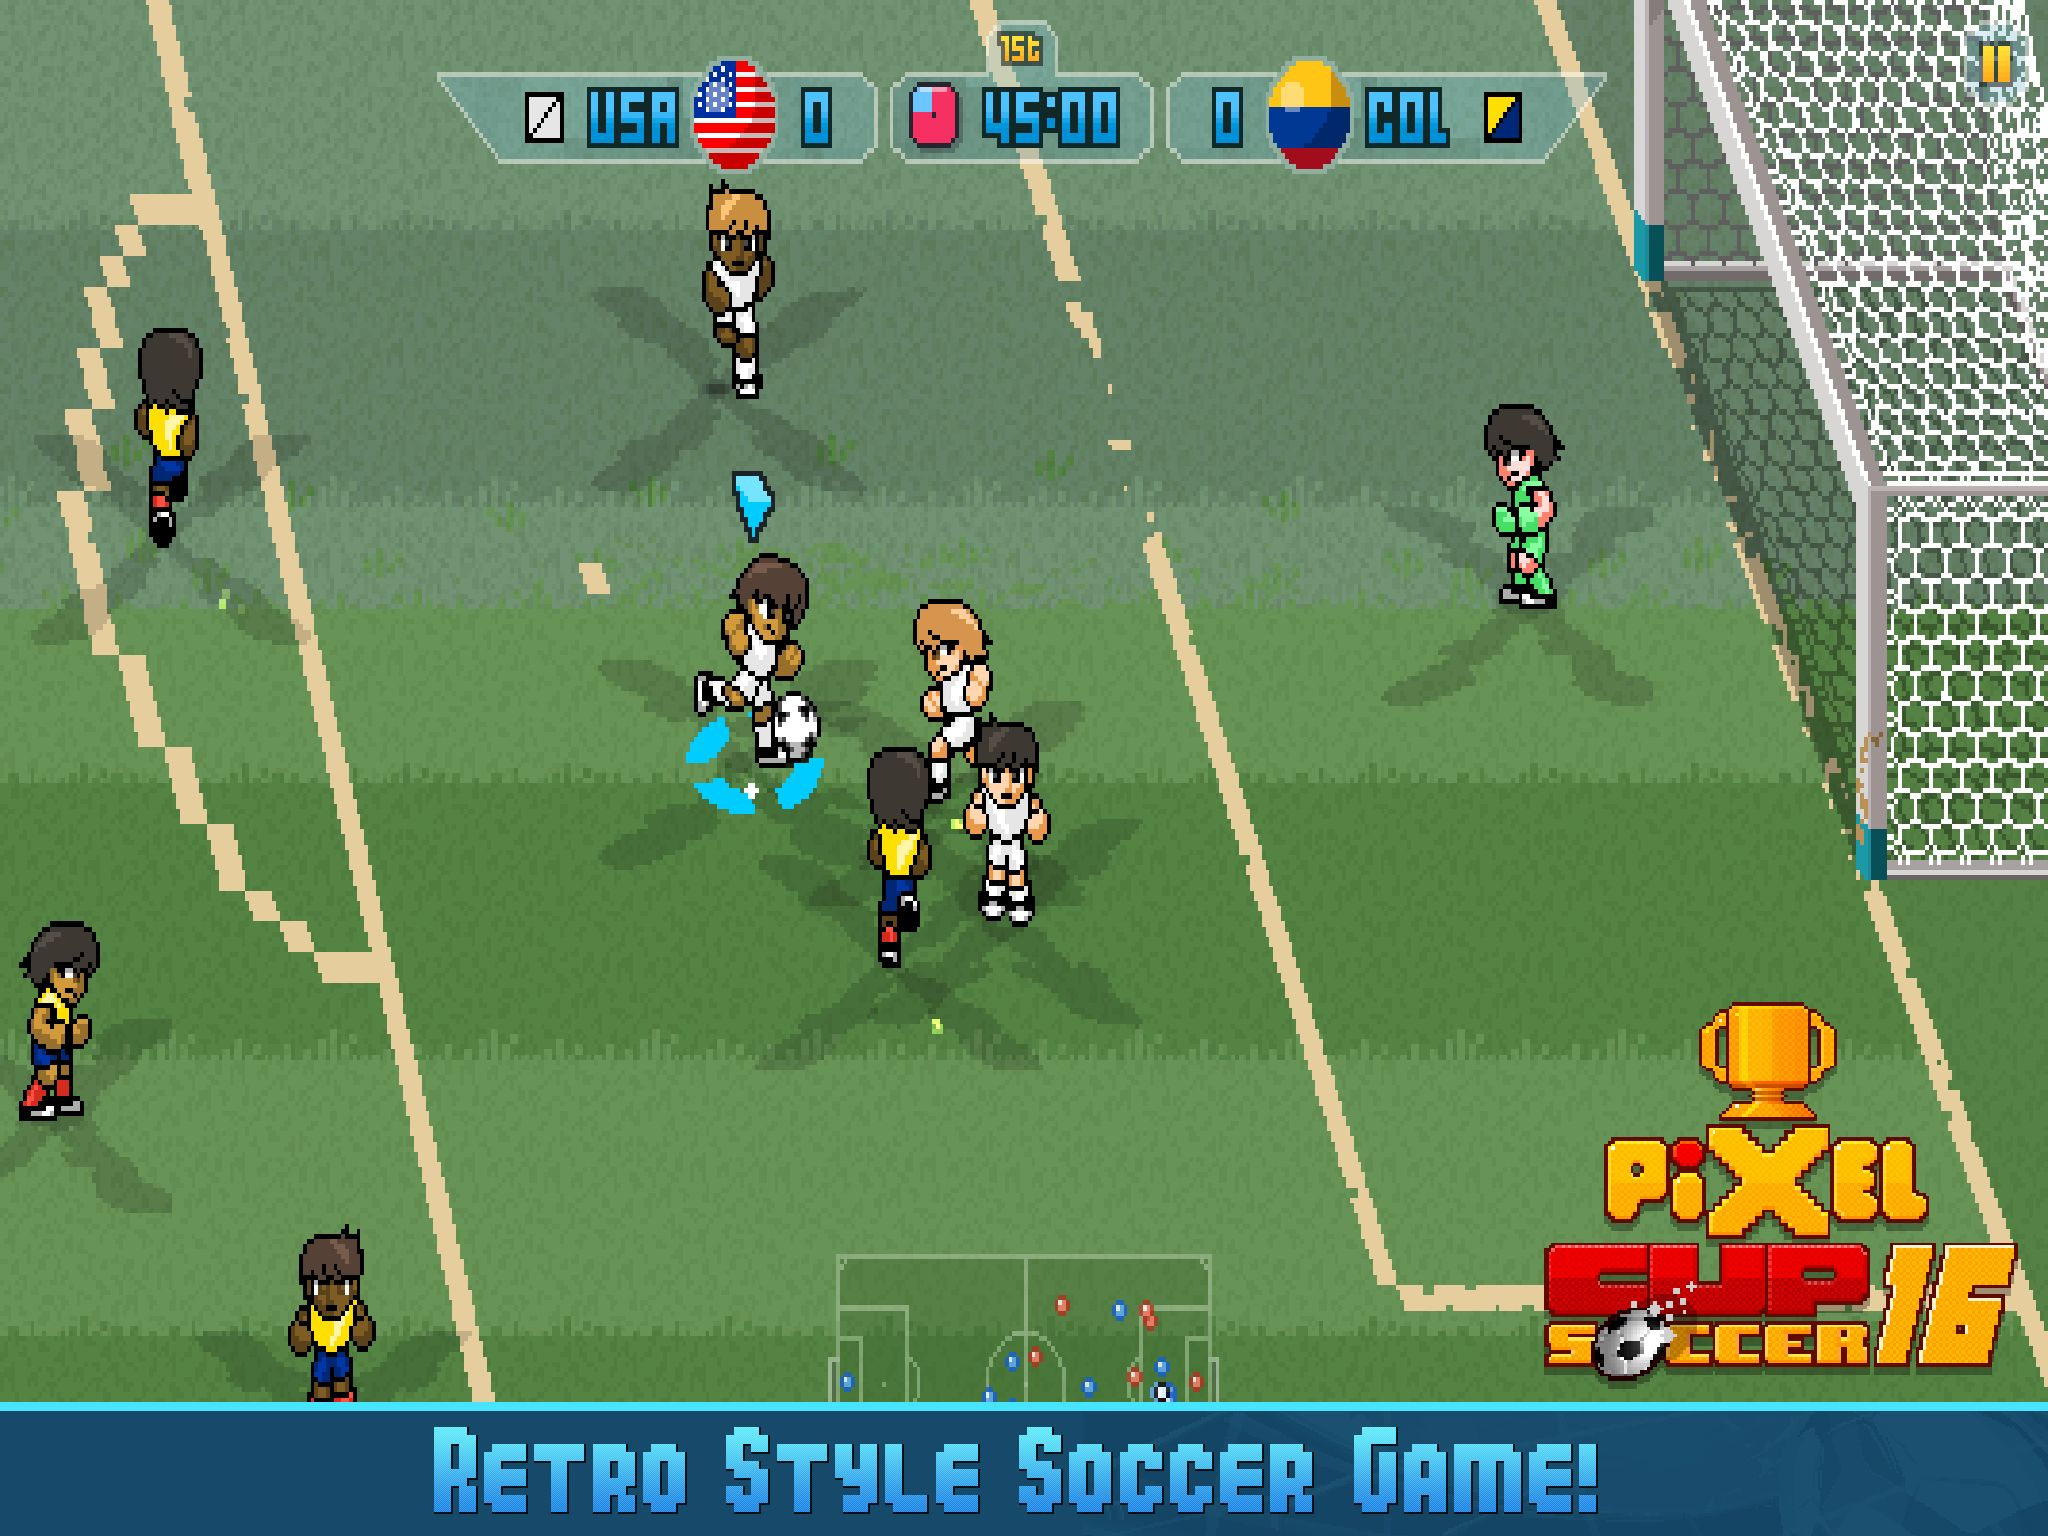 You'll have to wait a little longer for Pixel Cup Soccer 16 on Android